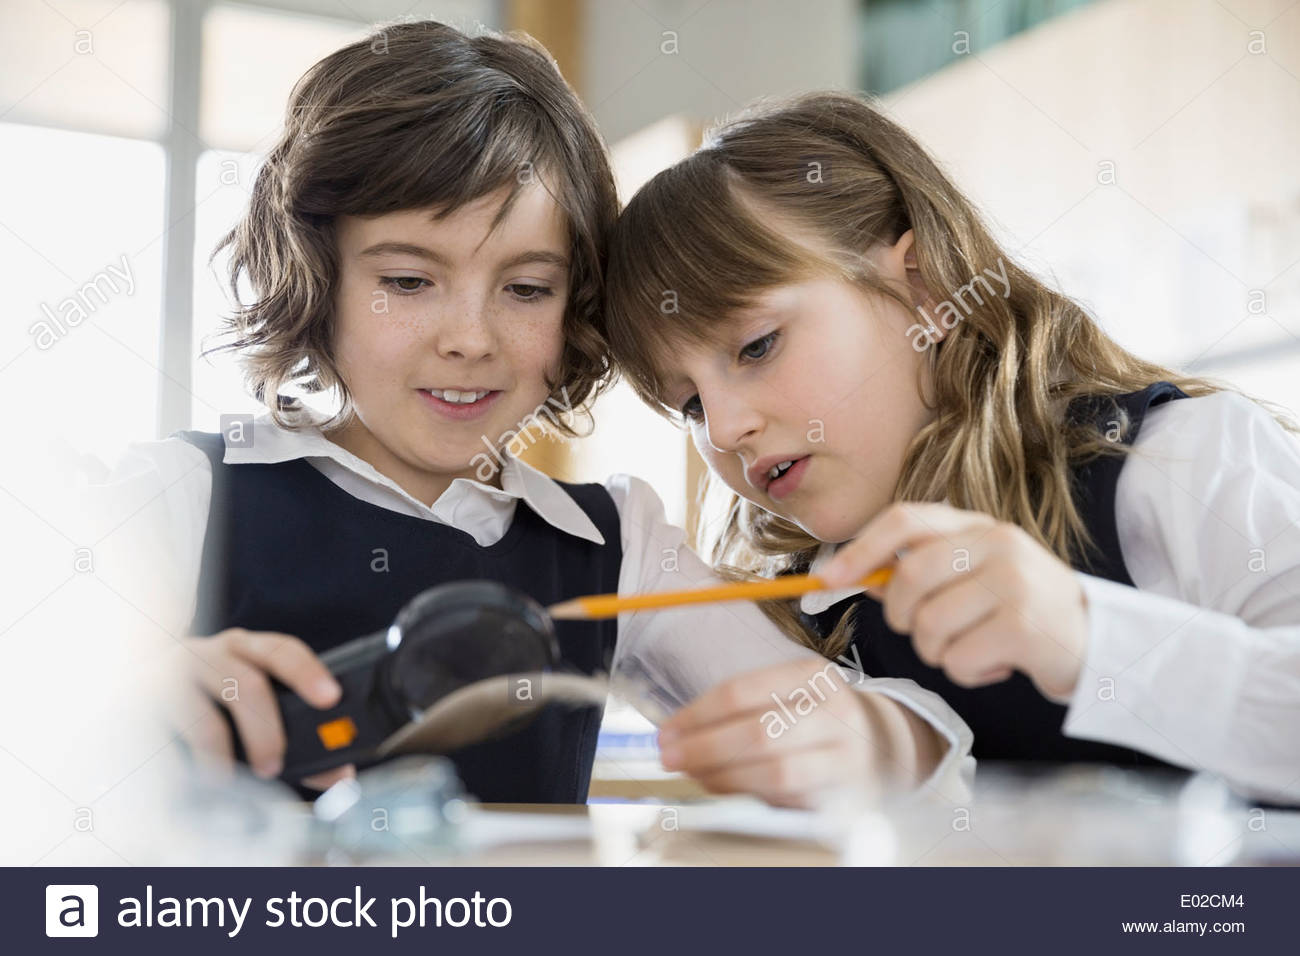 School girls conducting scientific experiment in classroom - Stock Image